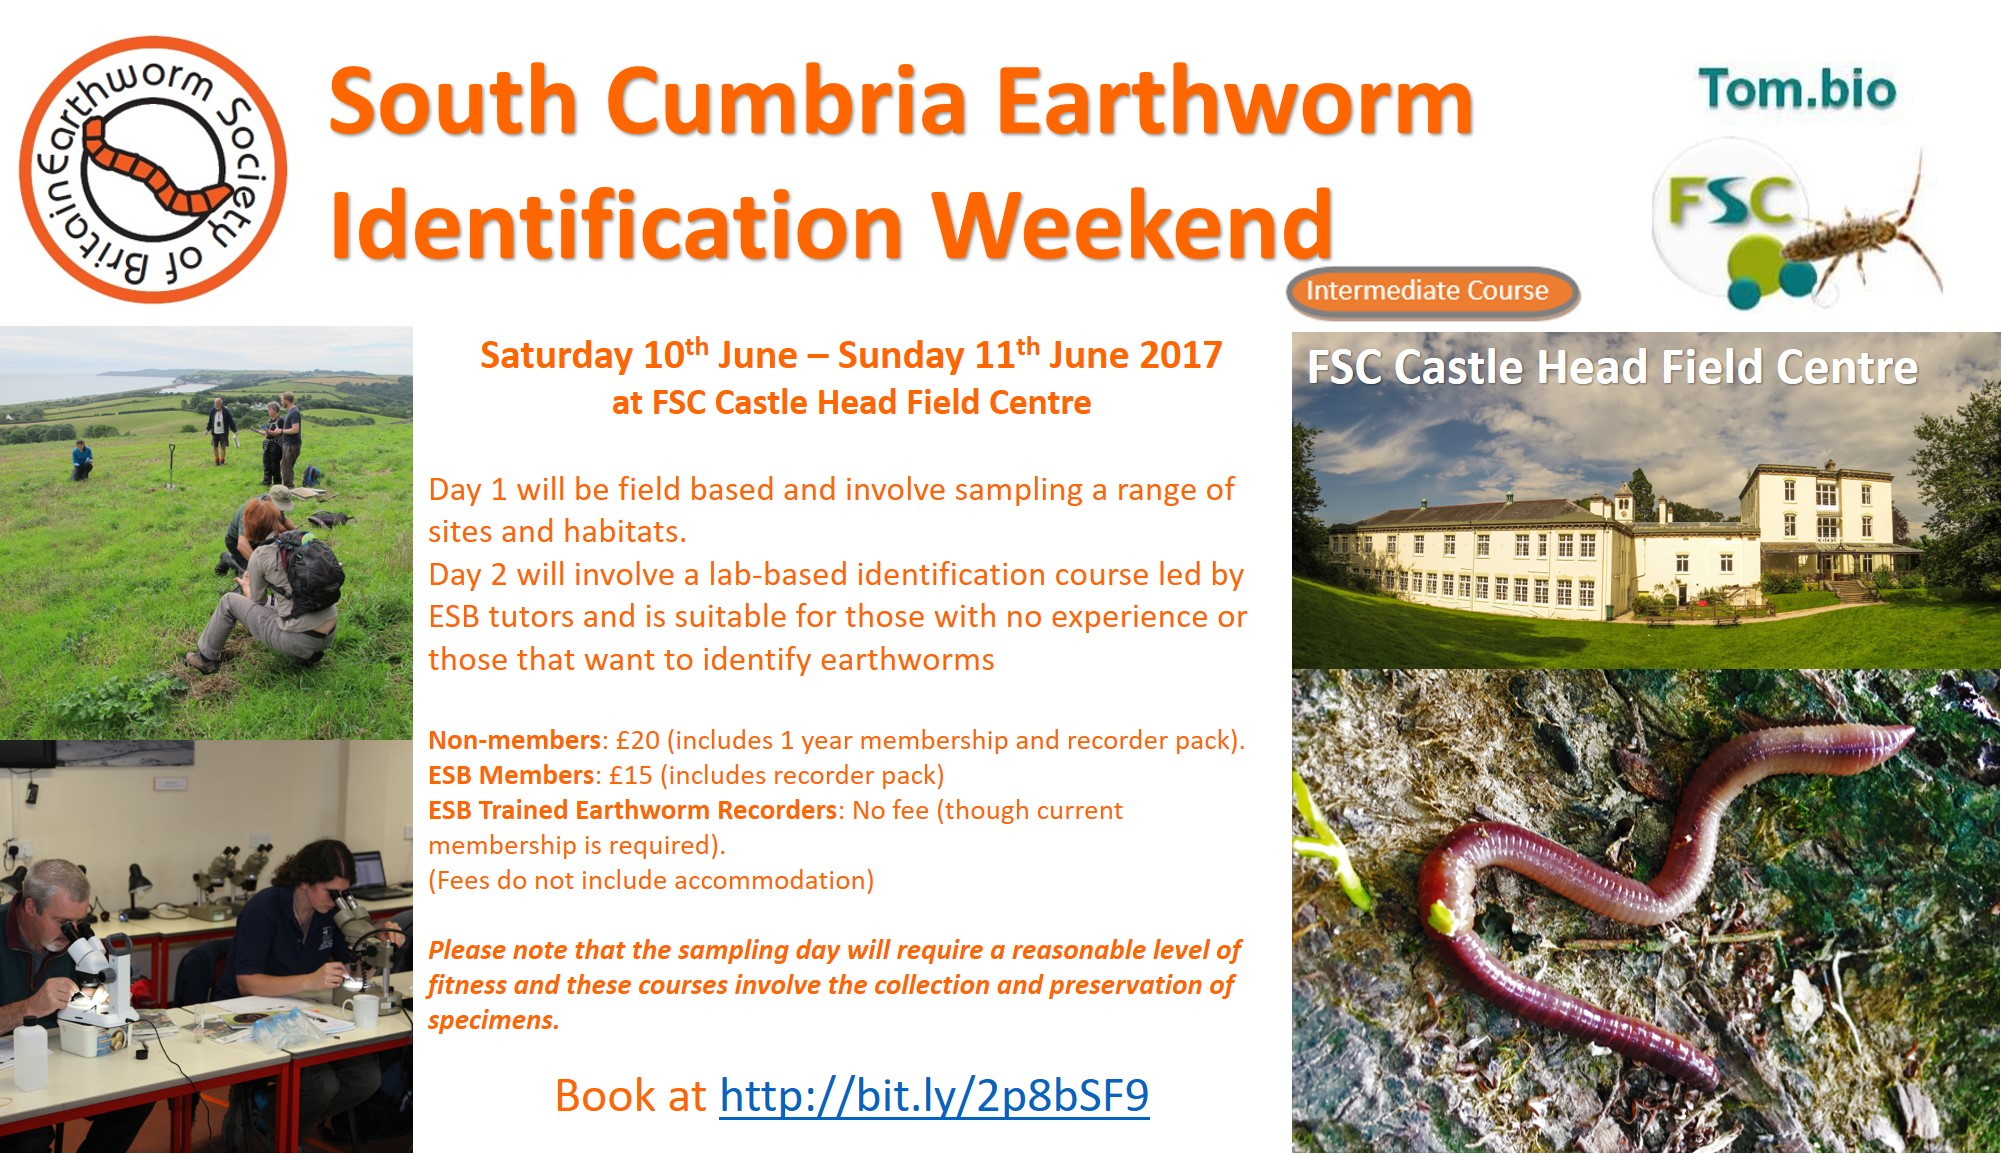 South Cumbria Earthworm ID Weekend 2017